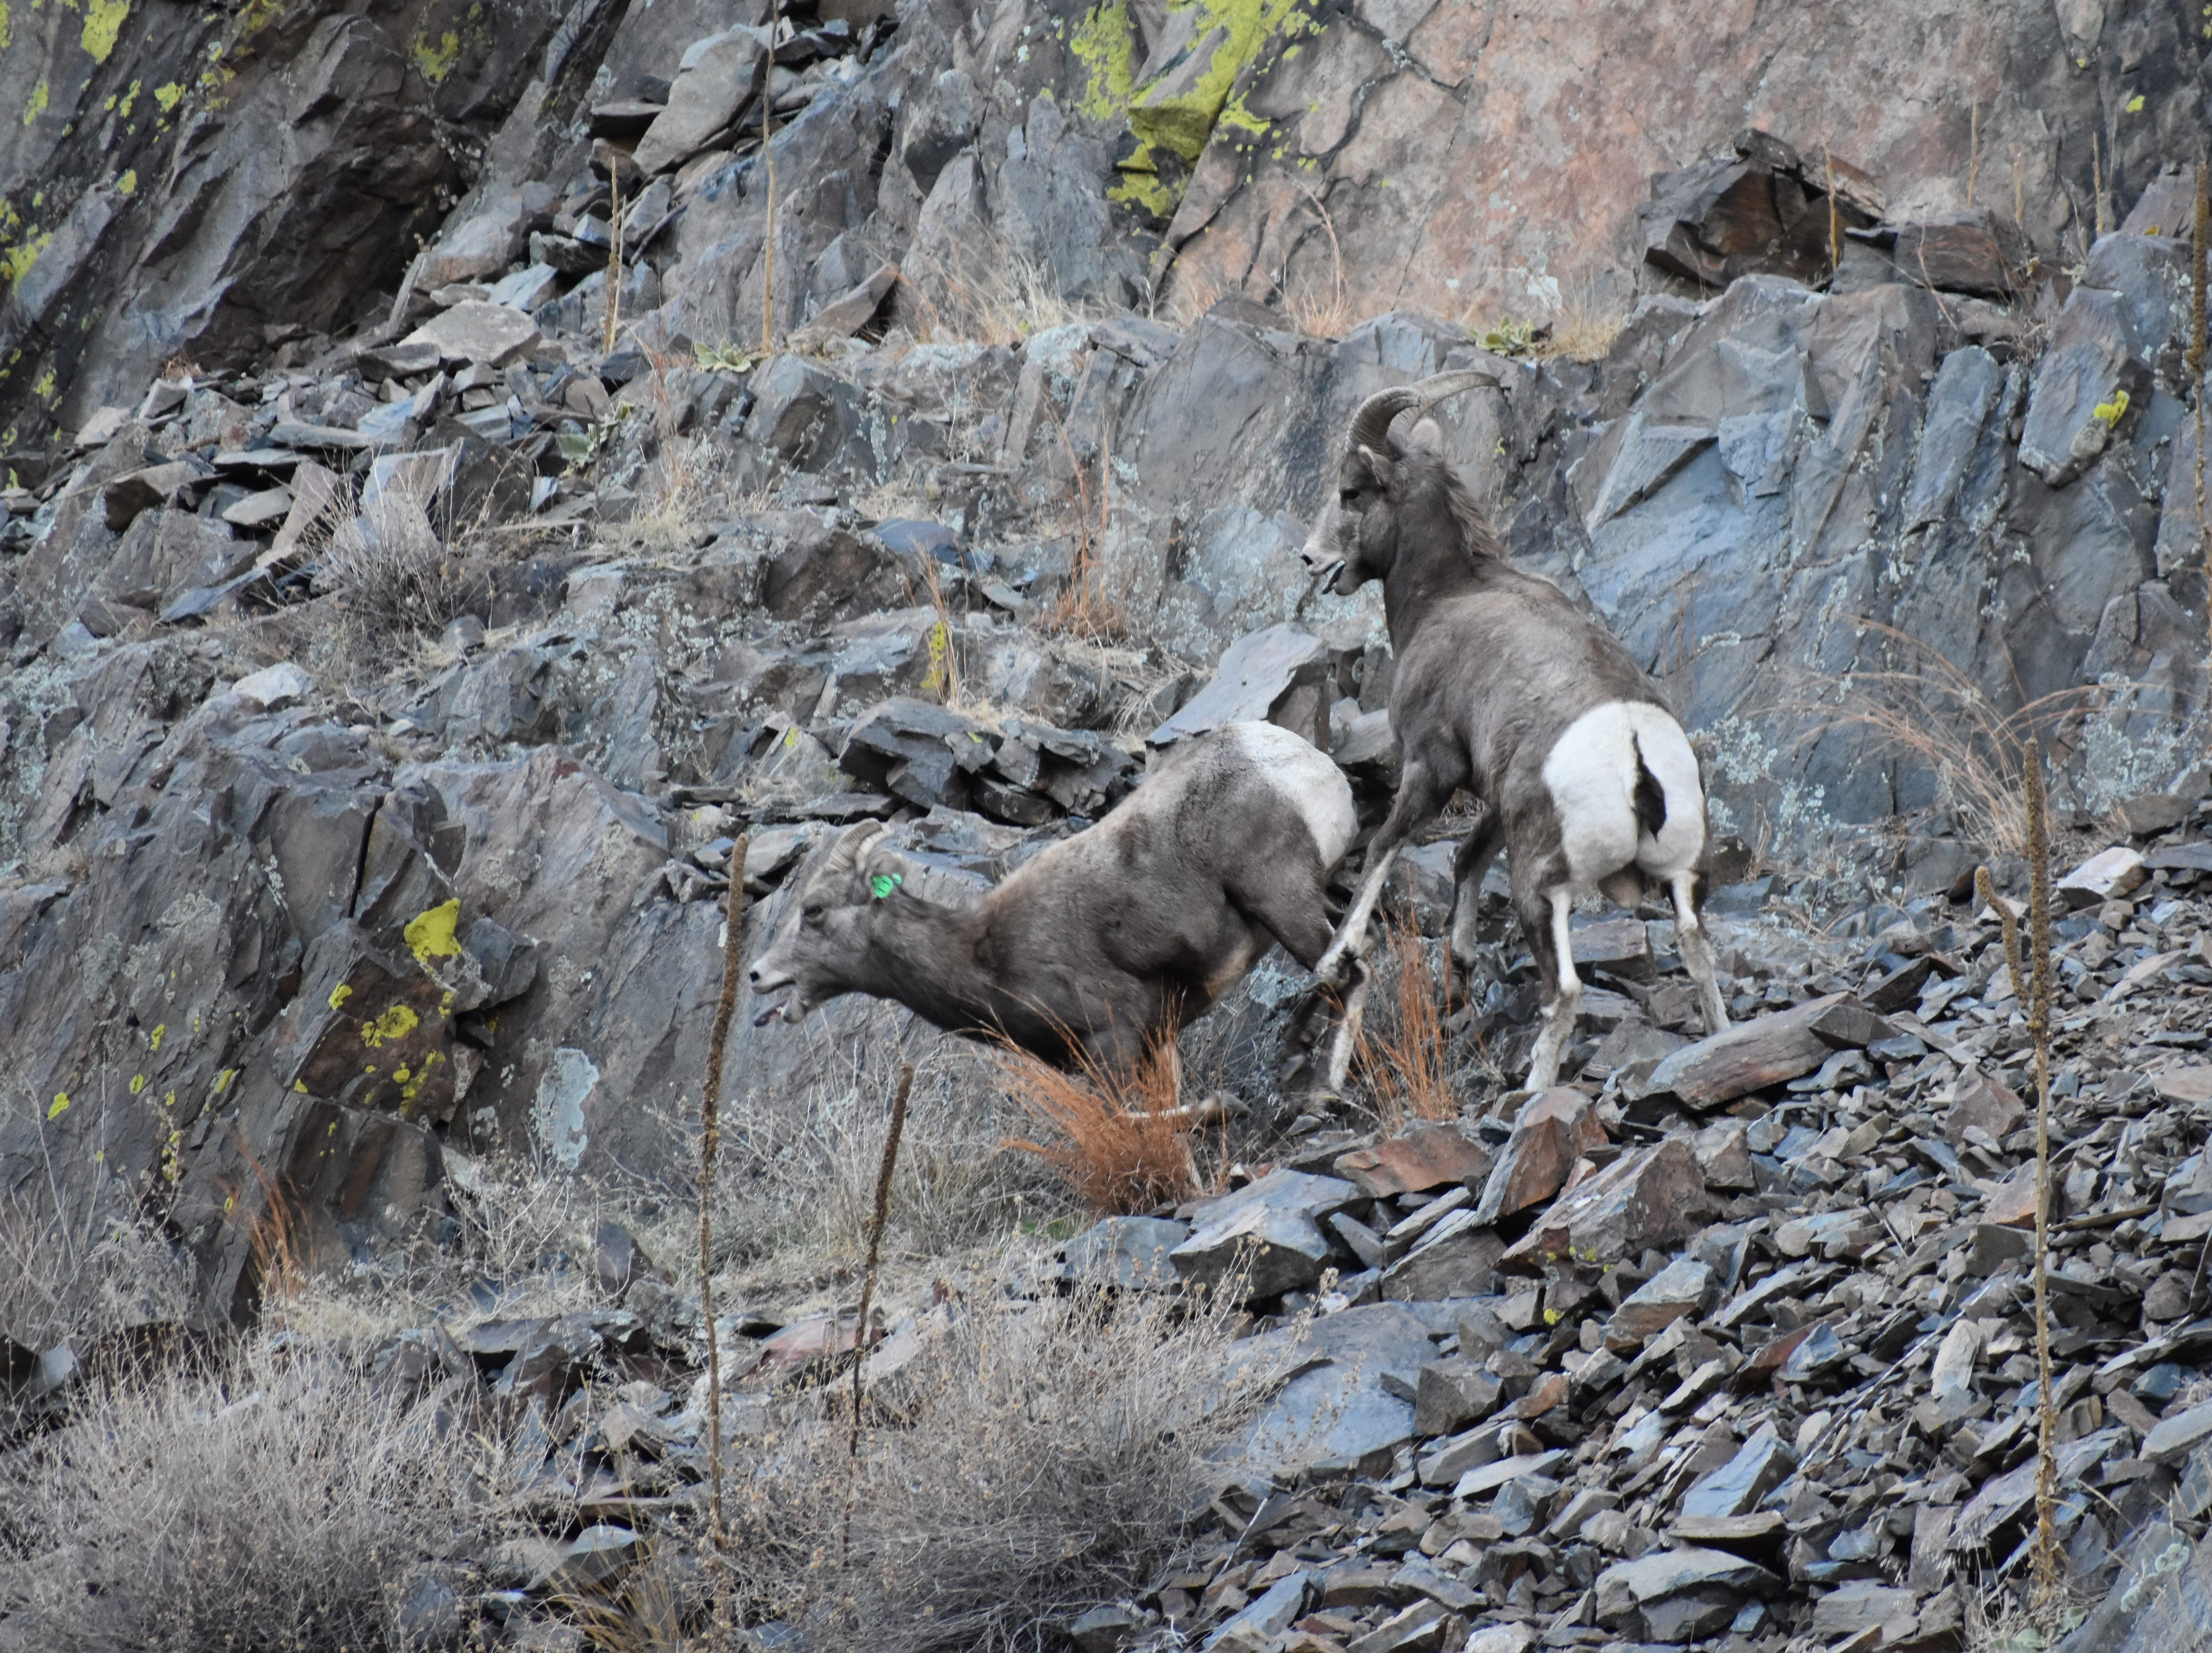 A young bighorn ram chases a ewe in an attempt to breed her near the mouth of the Big Thompson Canyon.